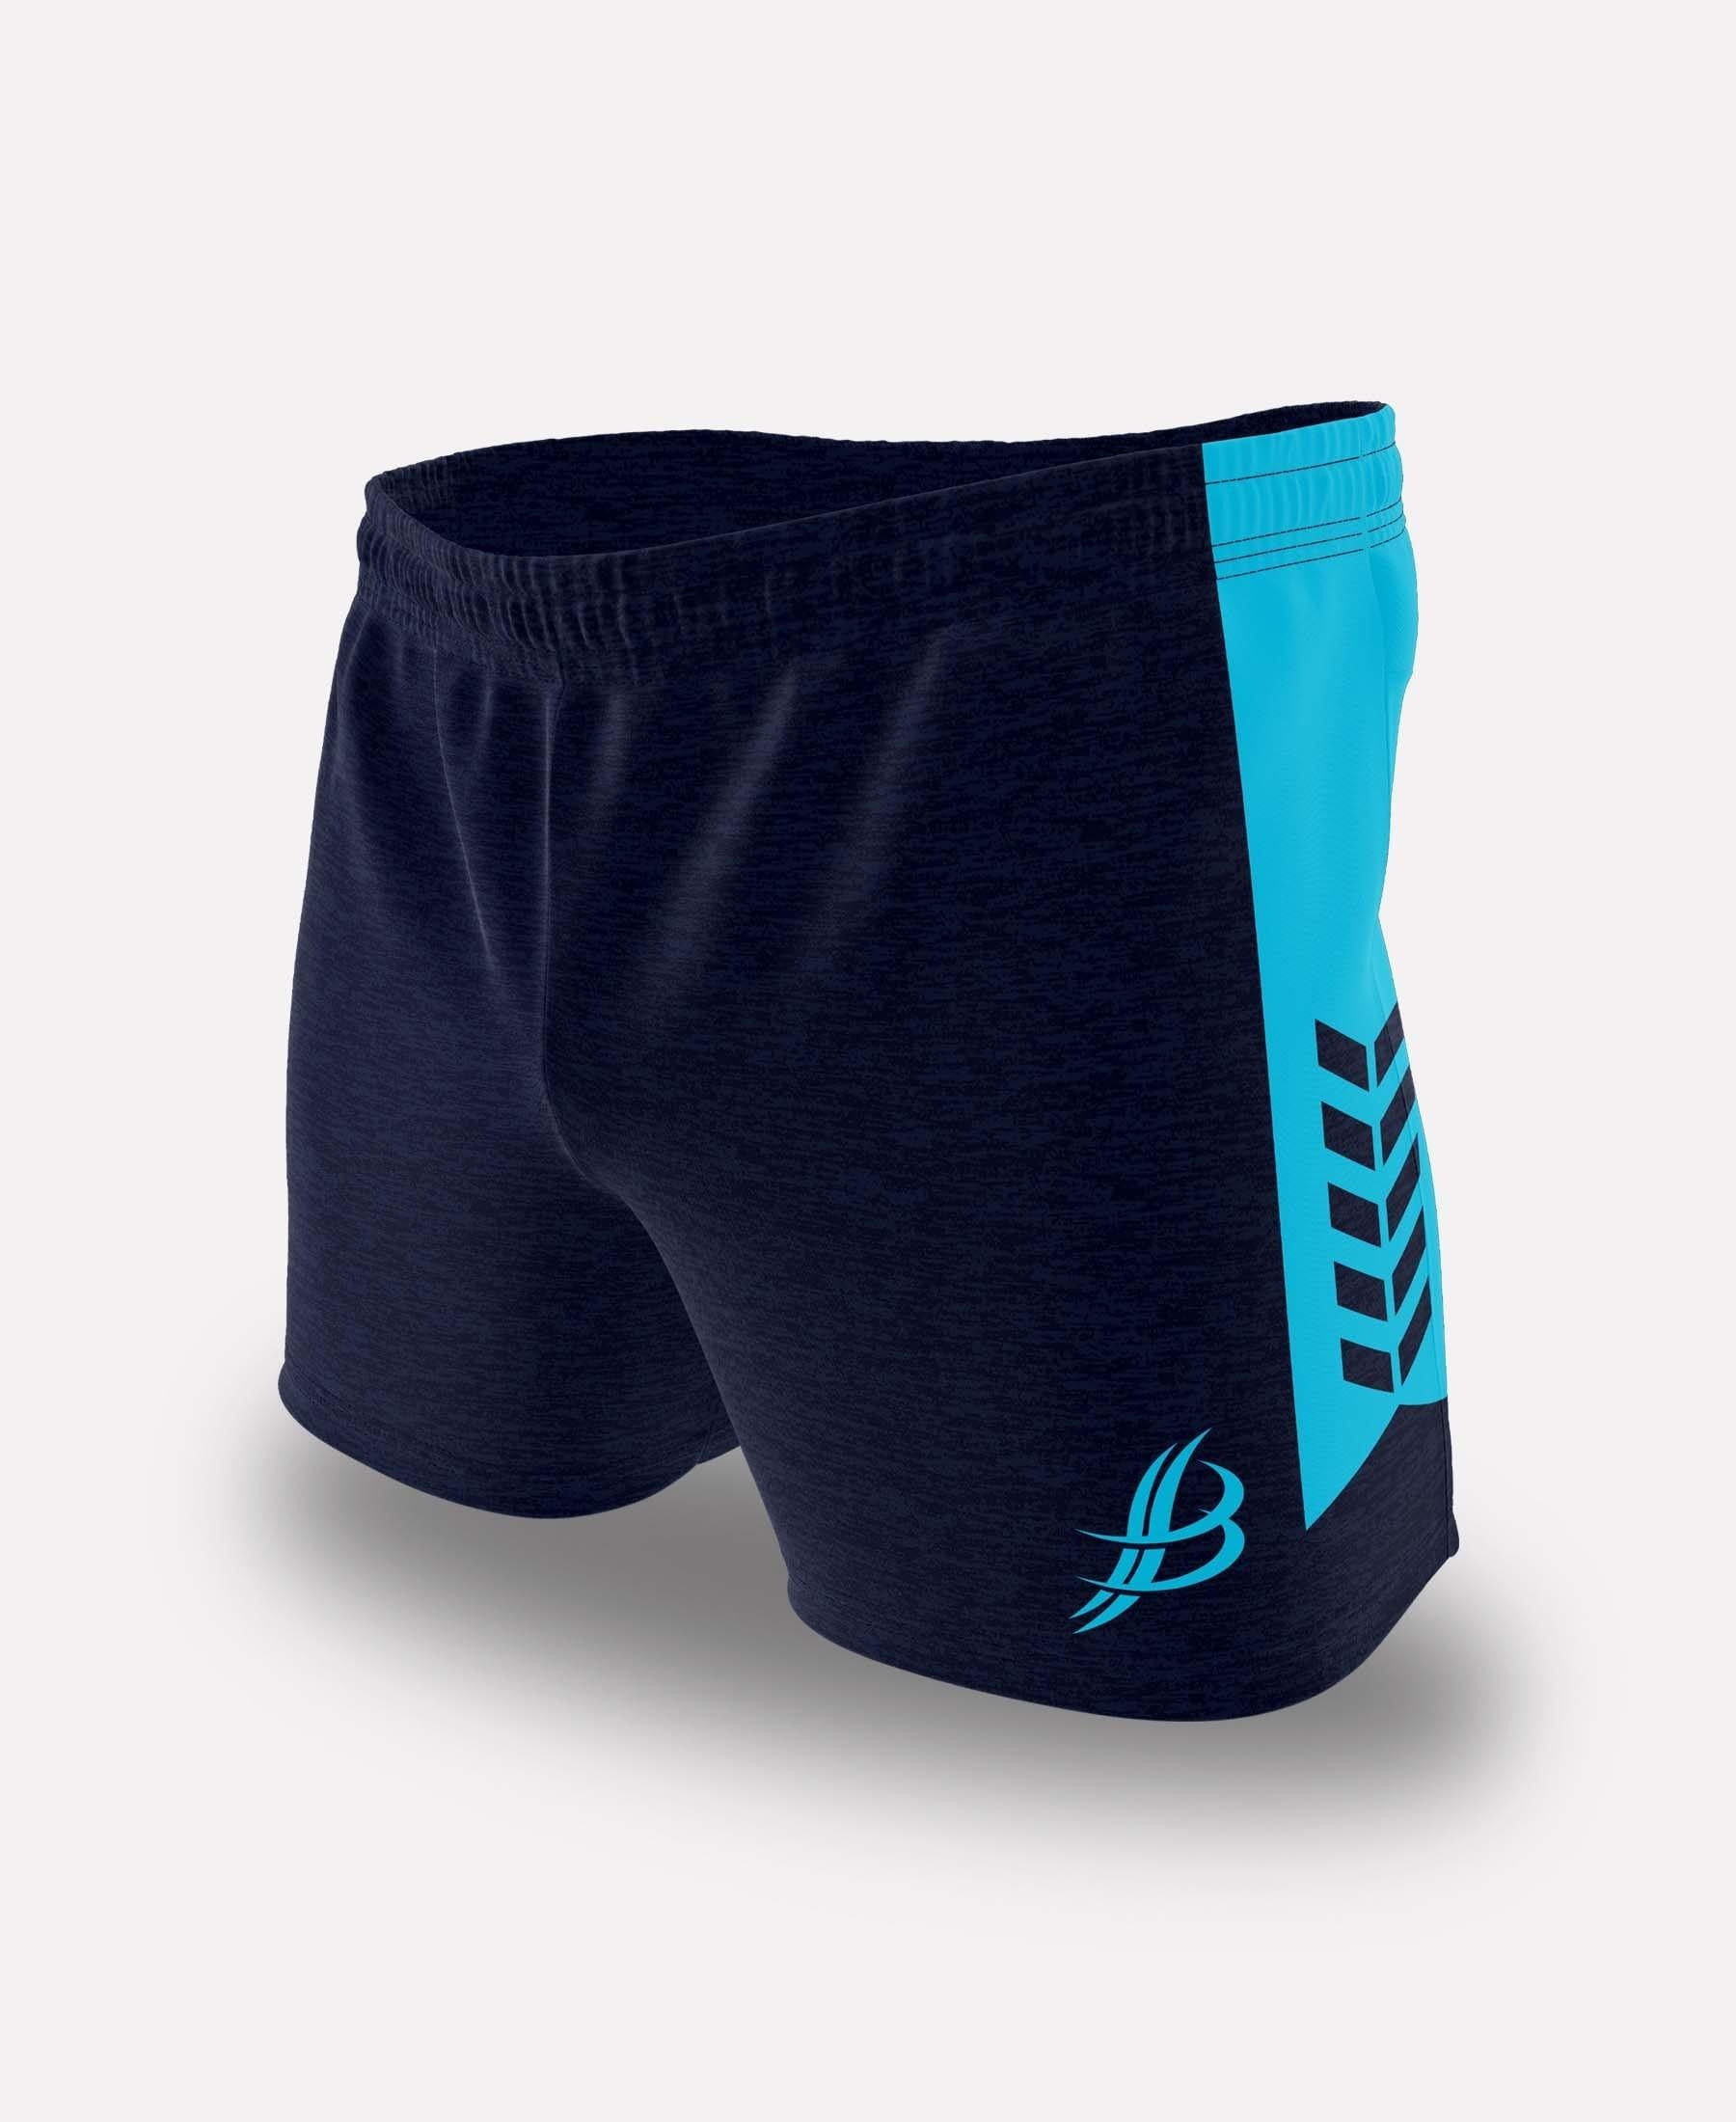 BUA20 Shorts (Navy/Cyan) - Bourke Sports Limited